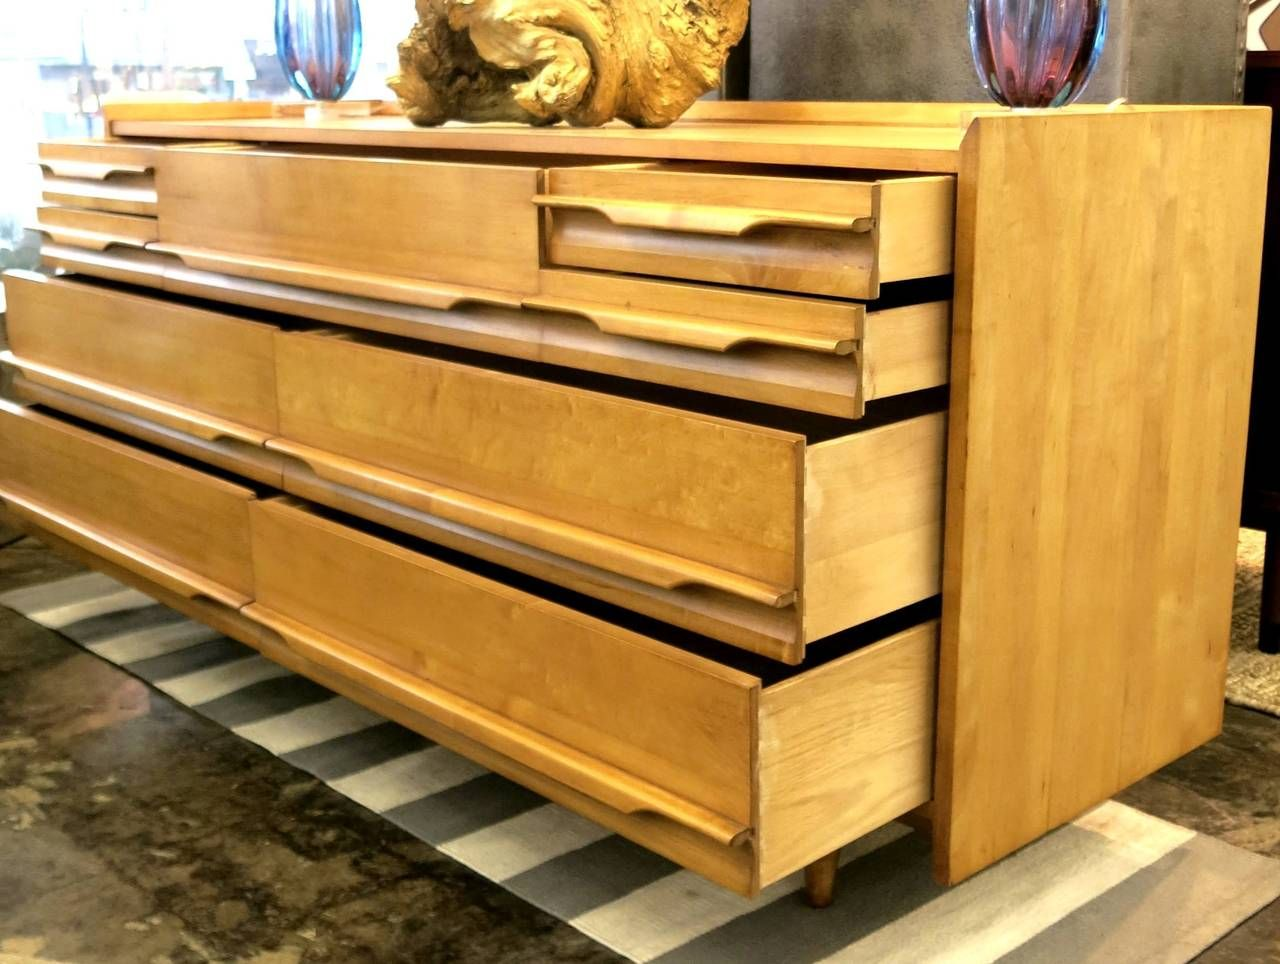 Awesome Crawford Furniture Mid Century Low Dresser Of Solid Maple, Circa 1950 |  From A